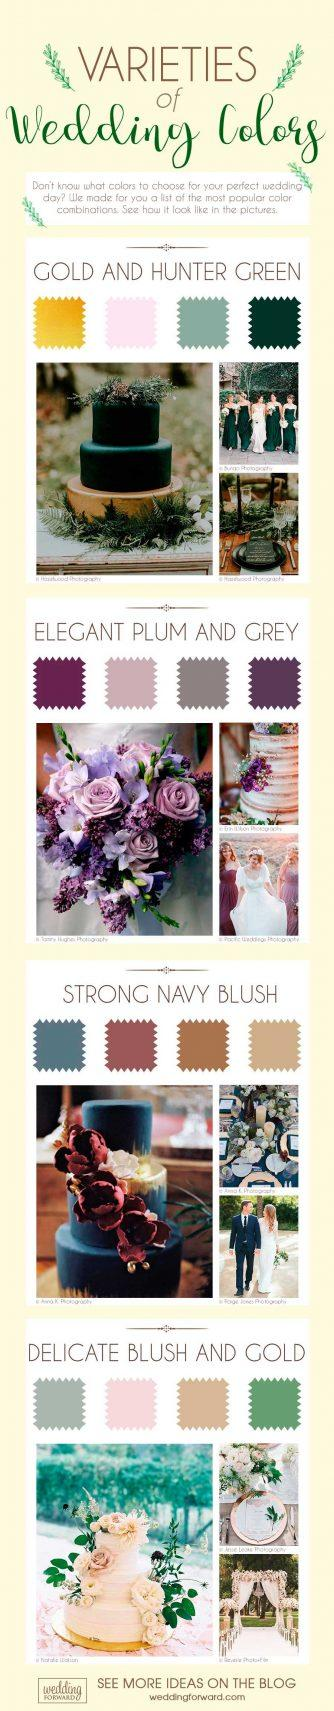 varieties of wedding colors wedding theme infographics